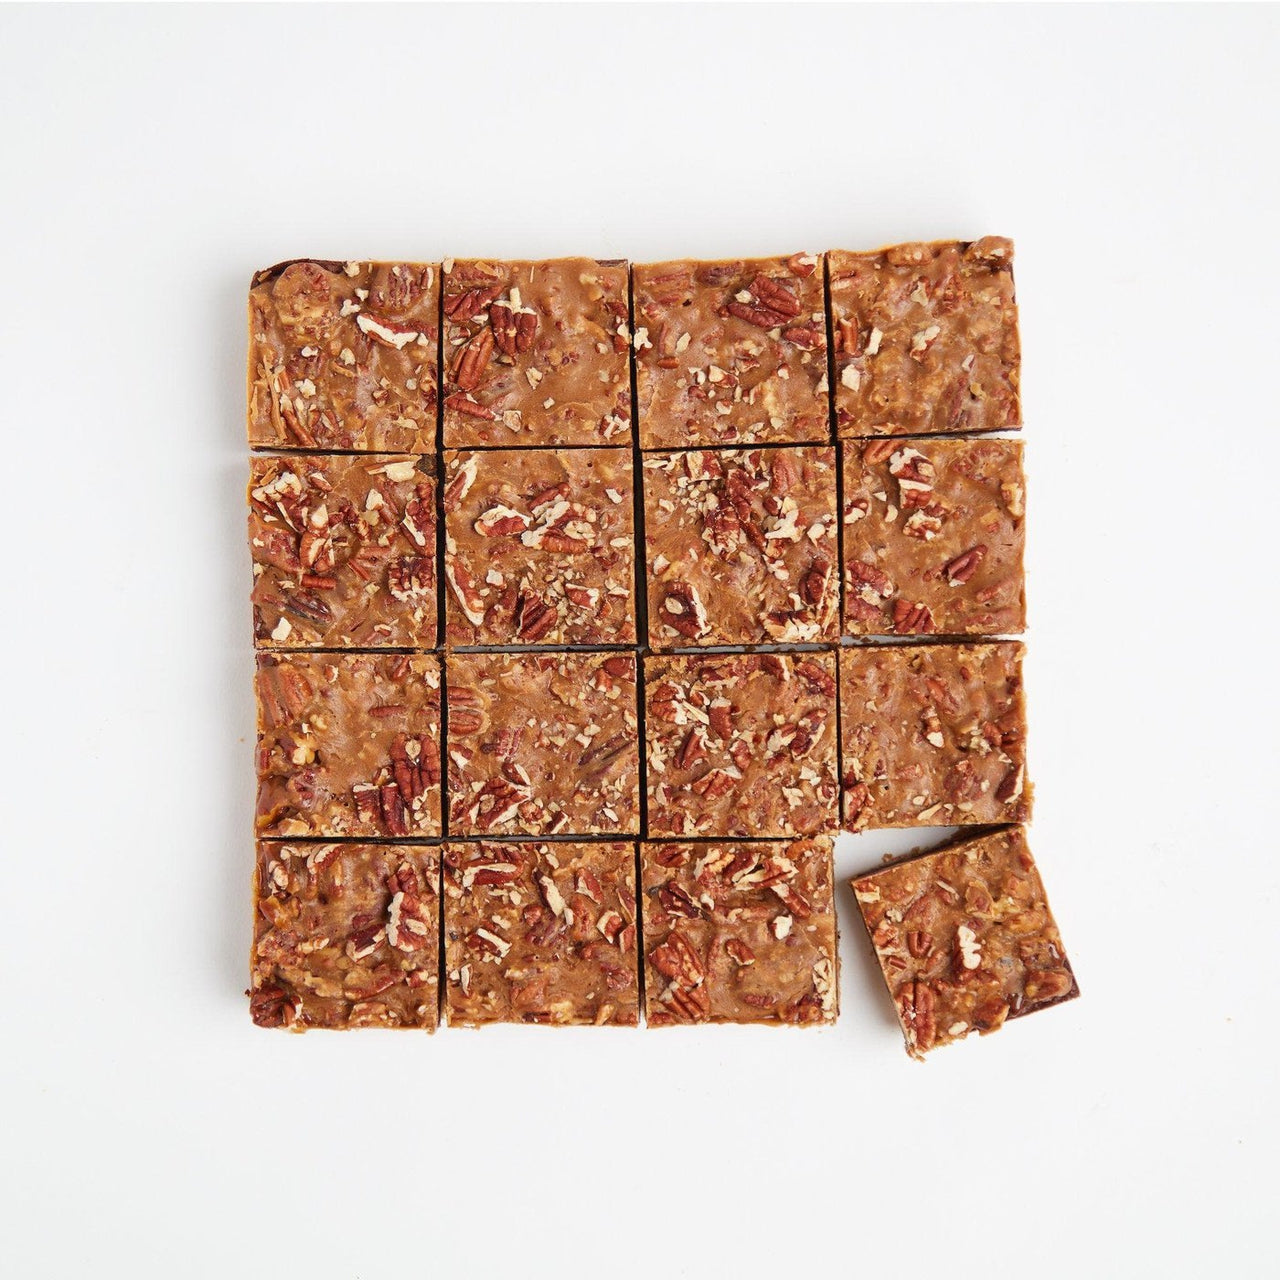 Pecan Pie Brownie by Crumbs & Doilies